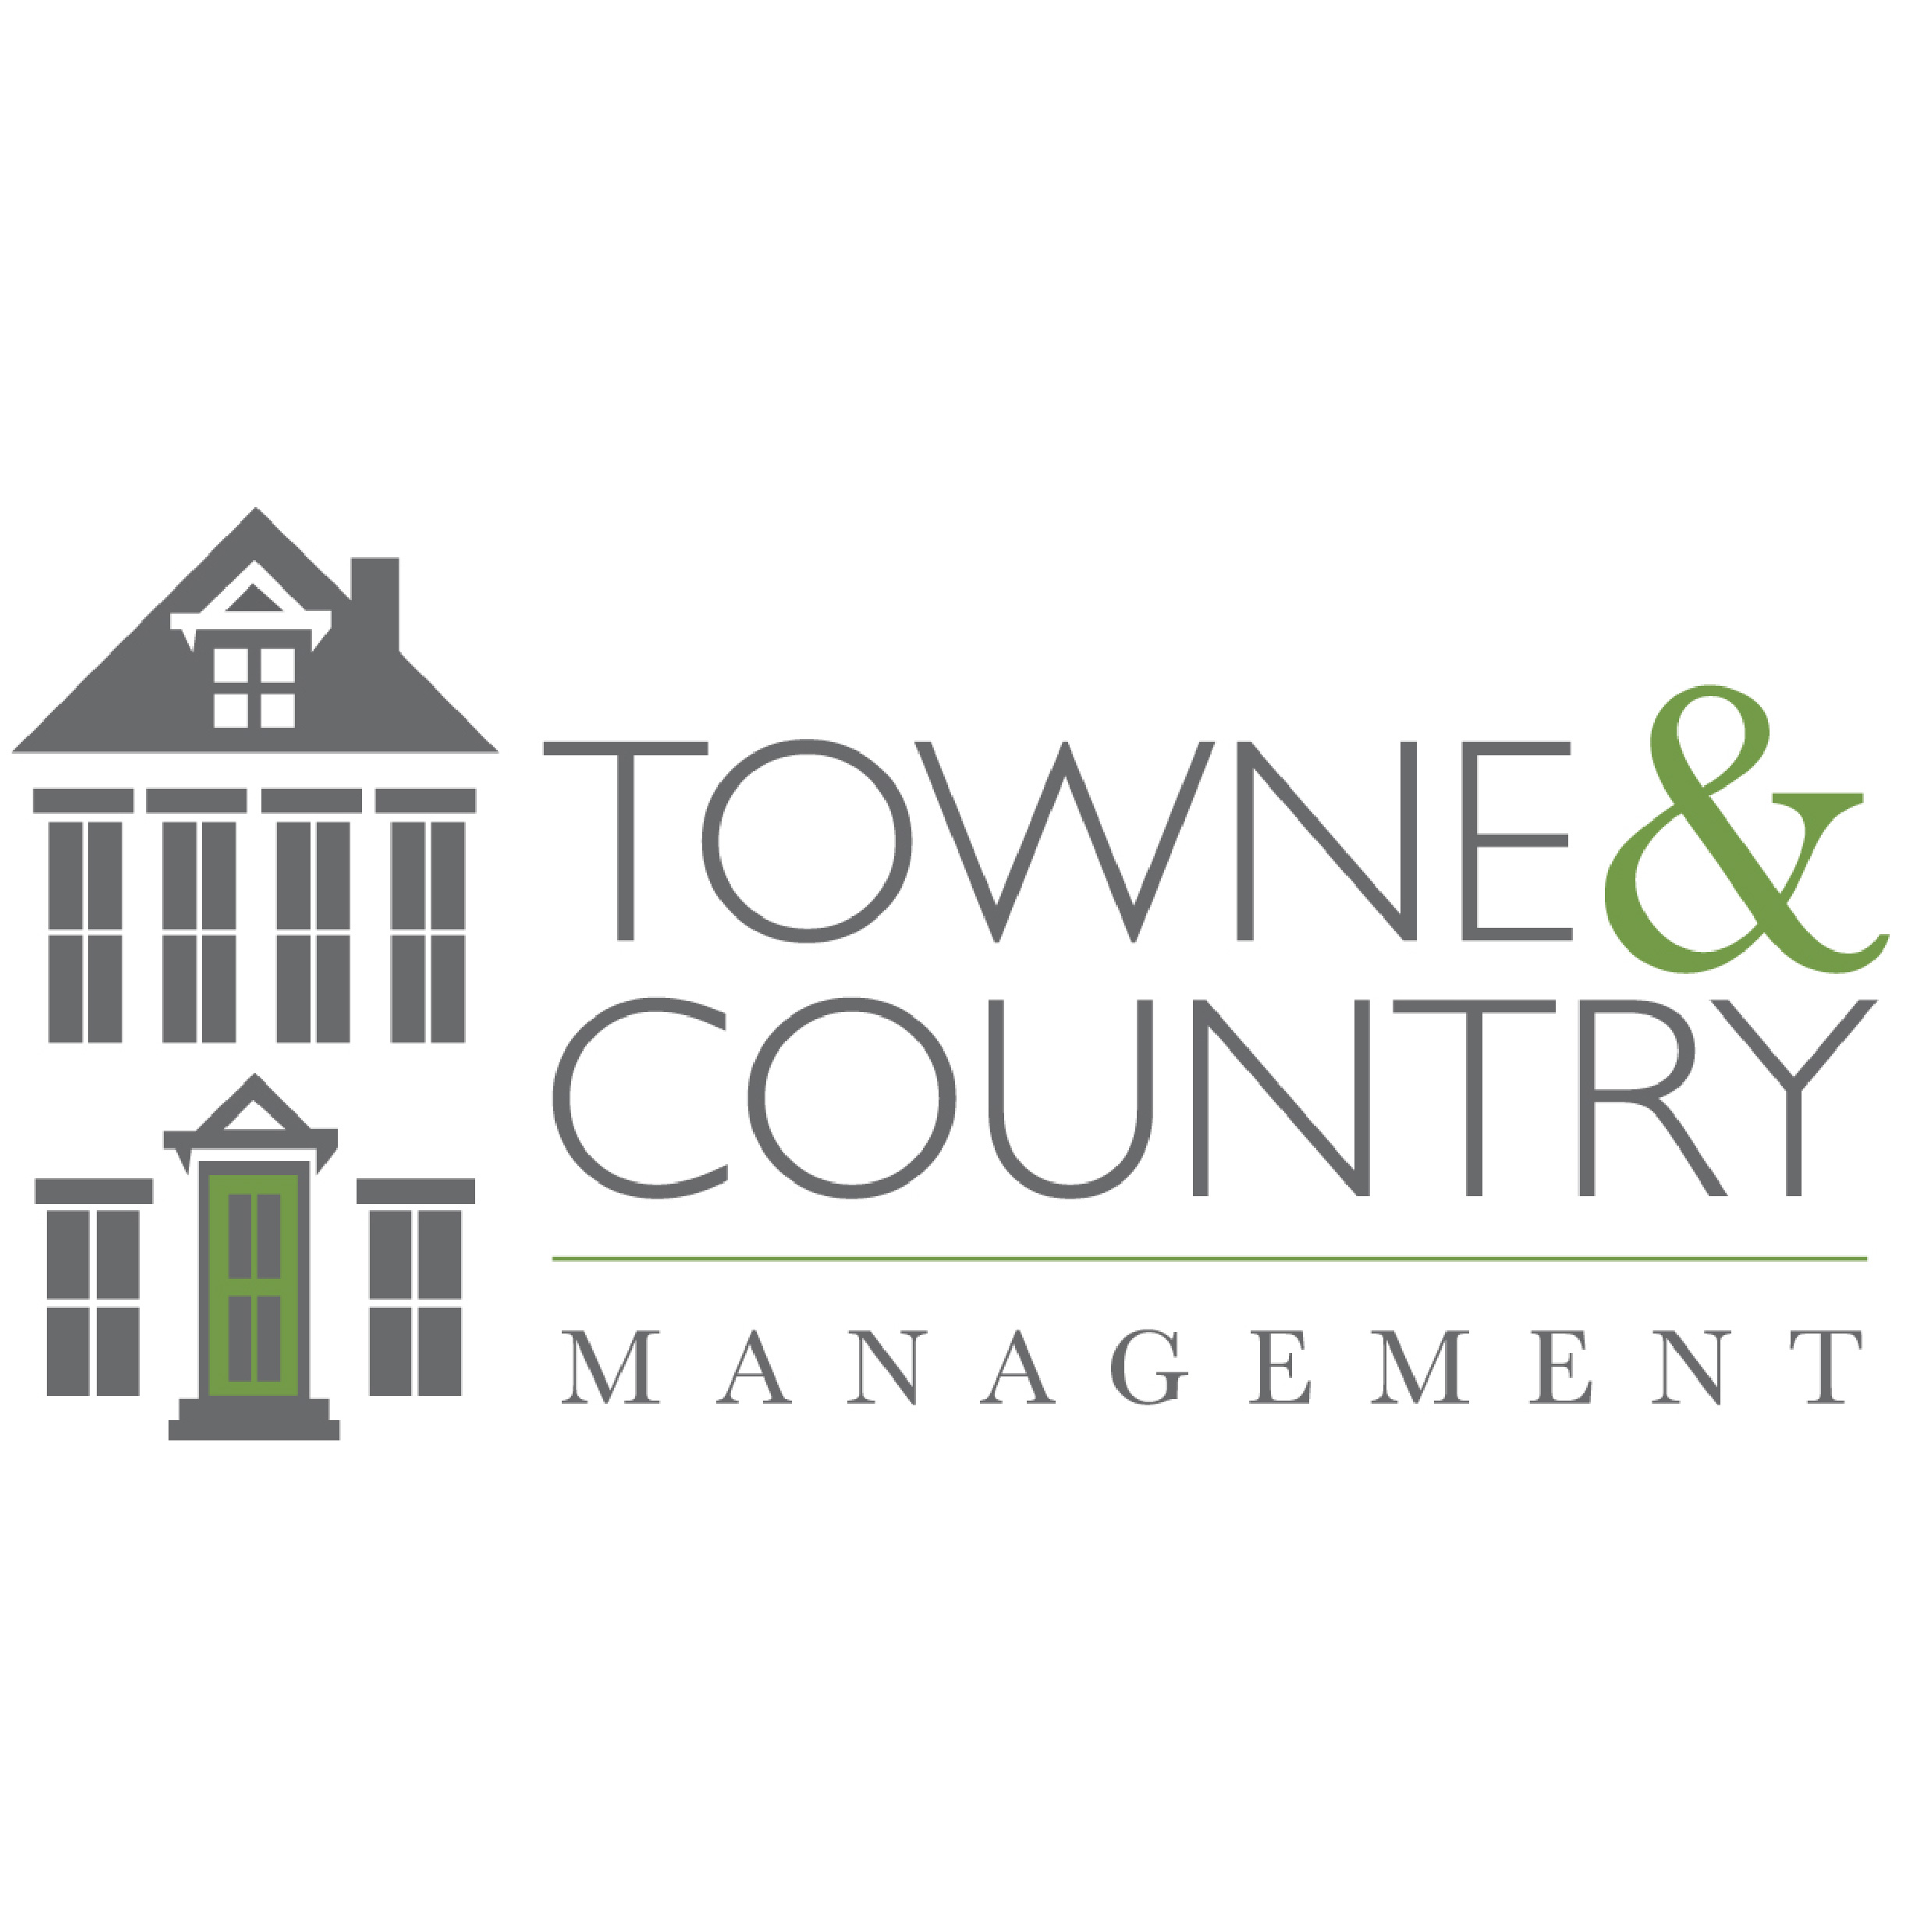 Towne & Country Management, Inc.